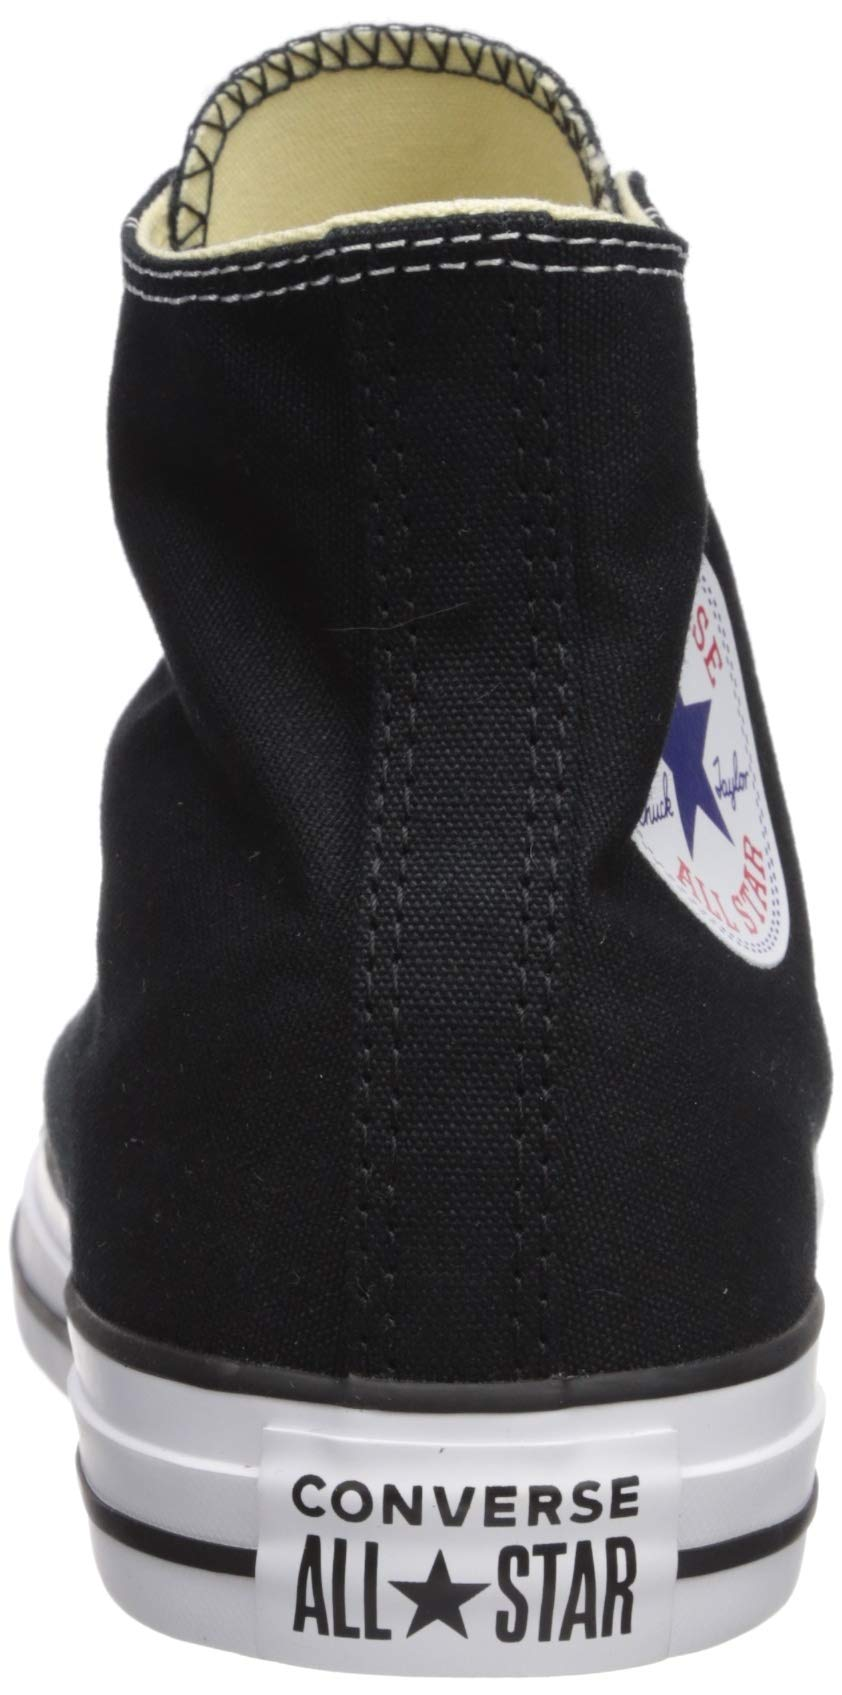 Chuck Taylor All Star Canvas High Top, Black, 4 M US by Converse (Image #2)